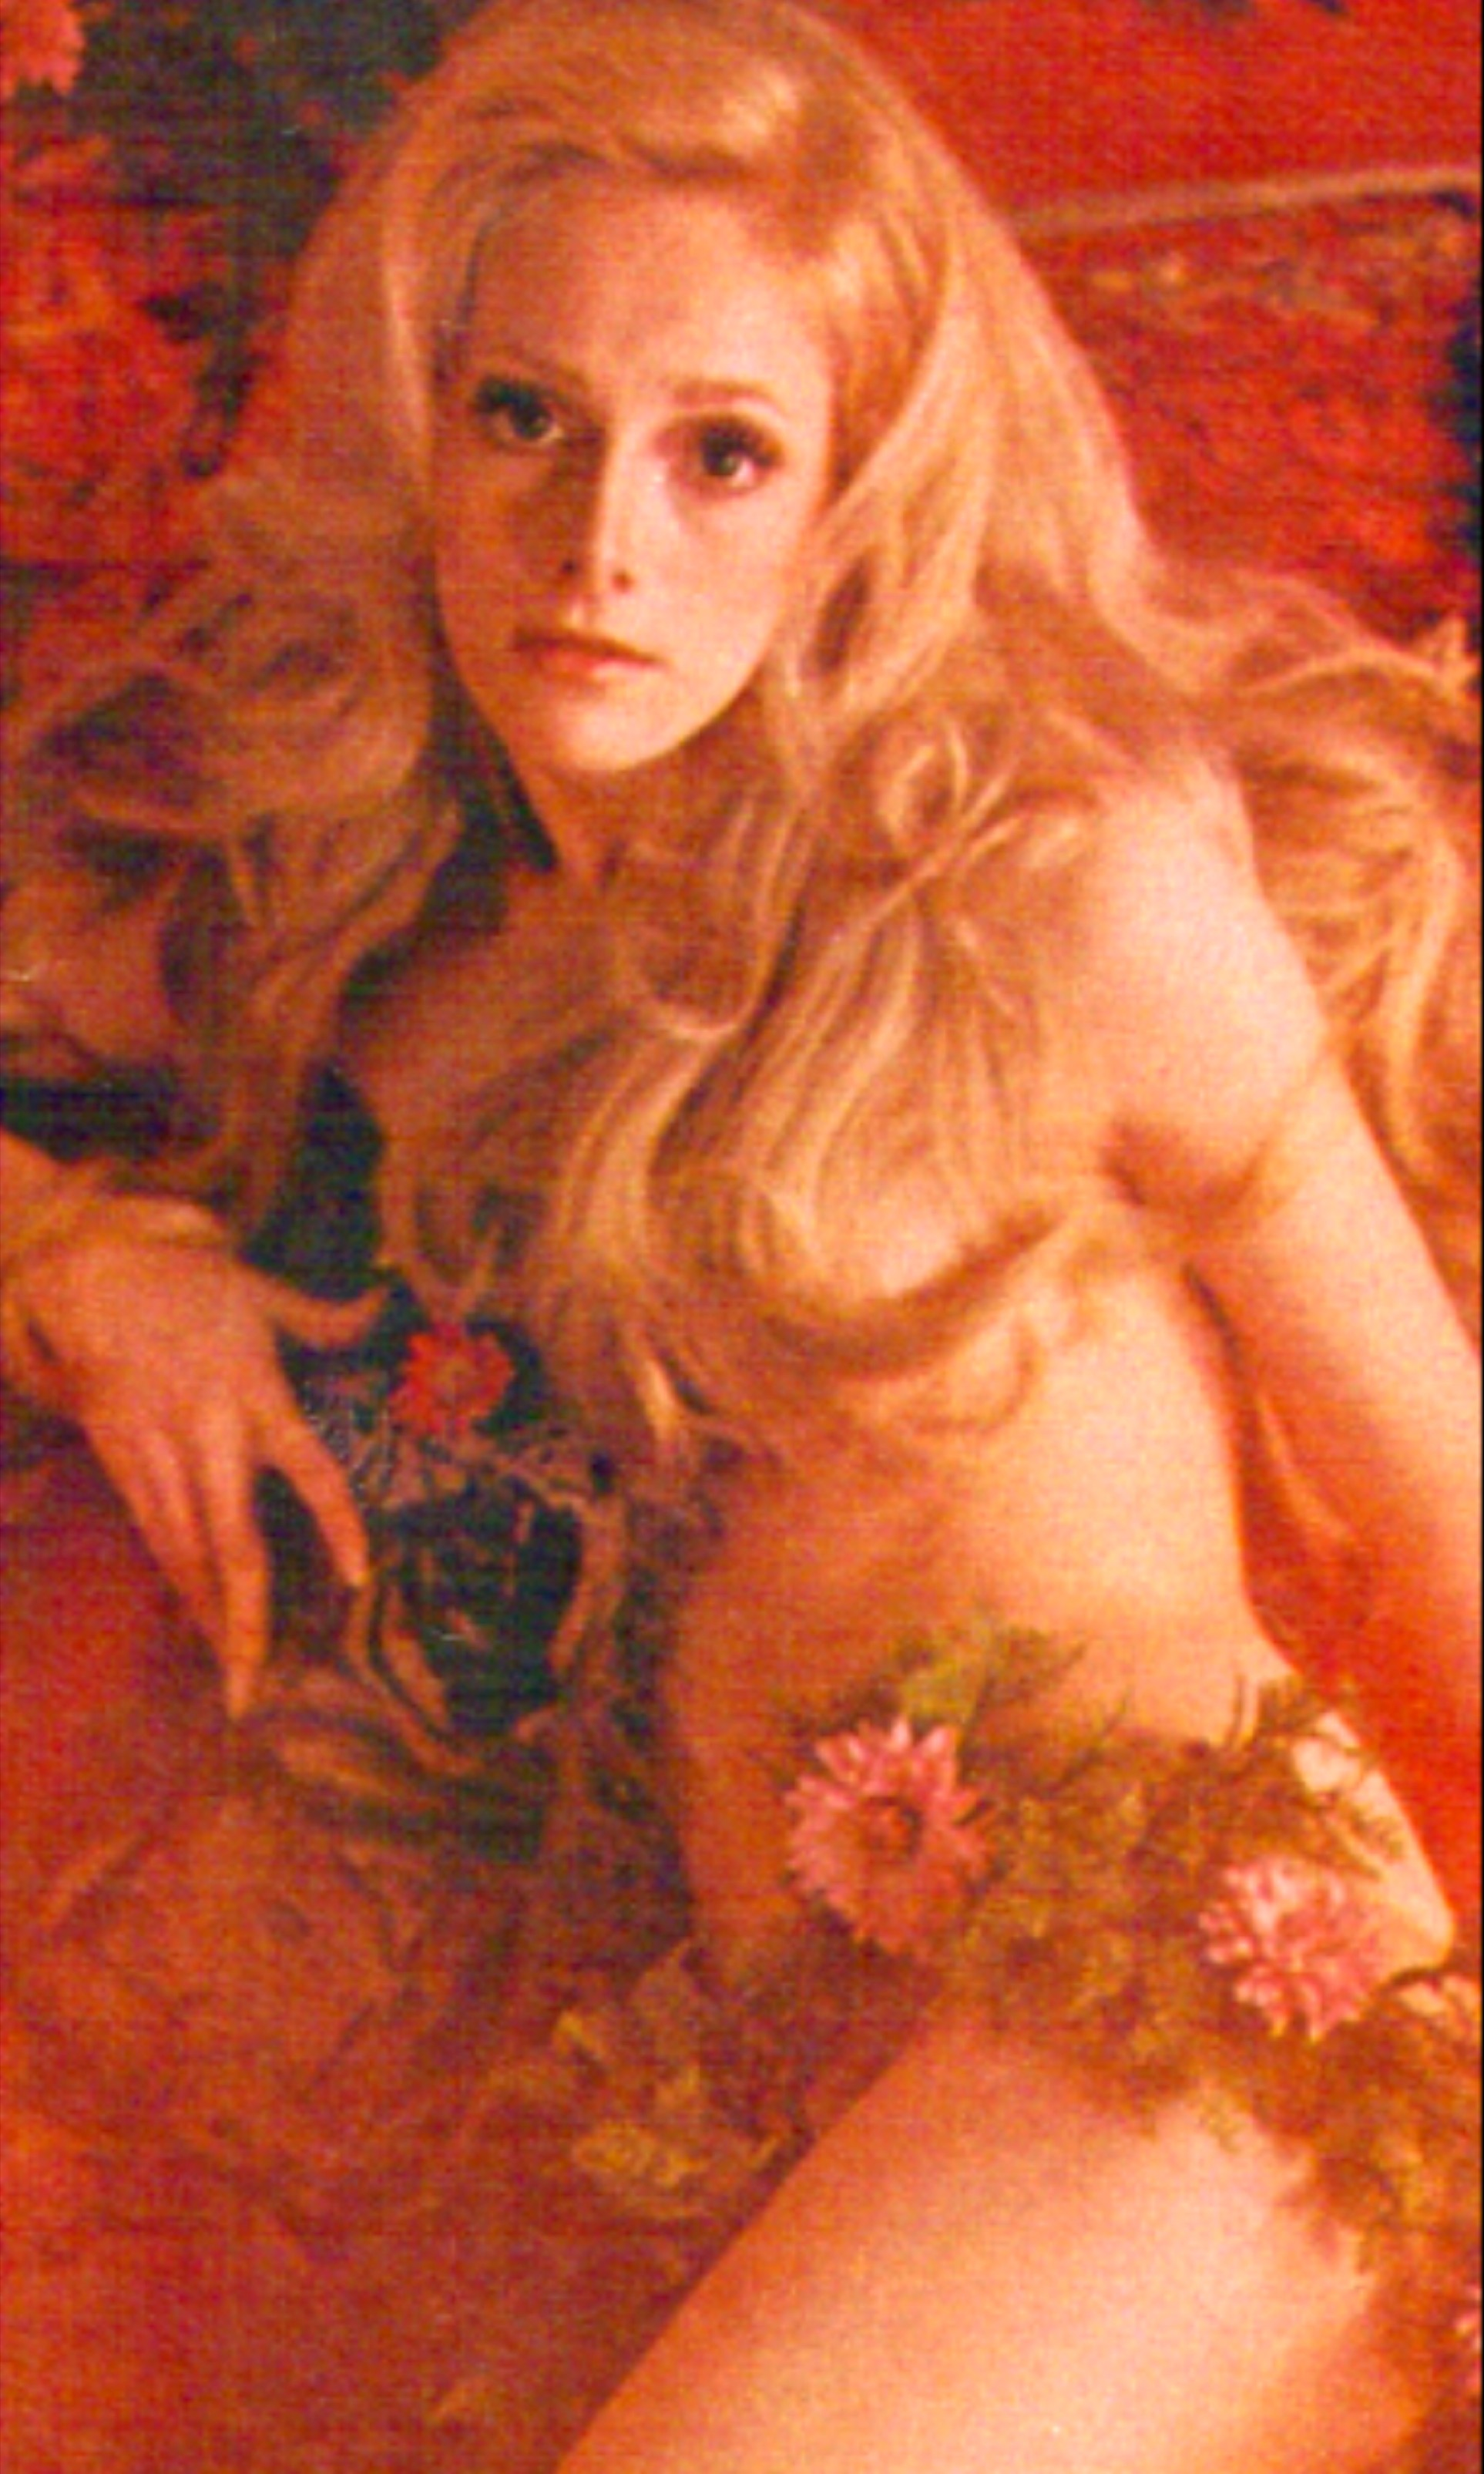 Sarah young the goddess of love 01 full vintage movie m22 - 3 part 10